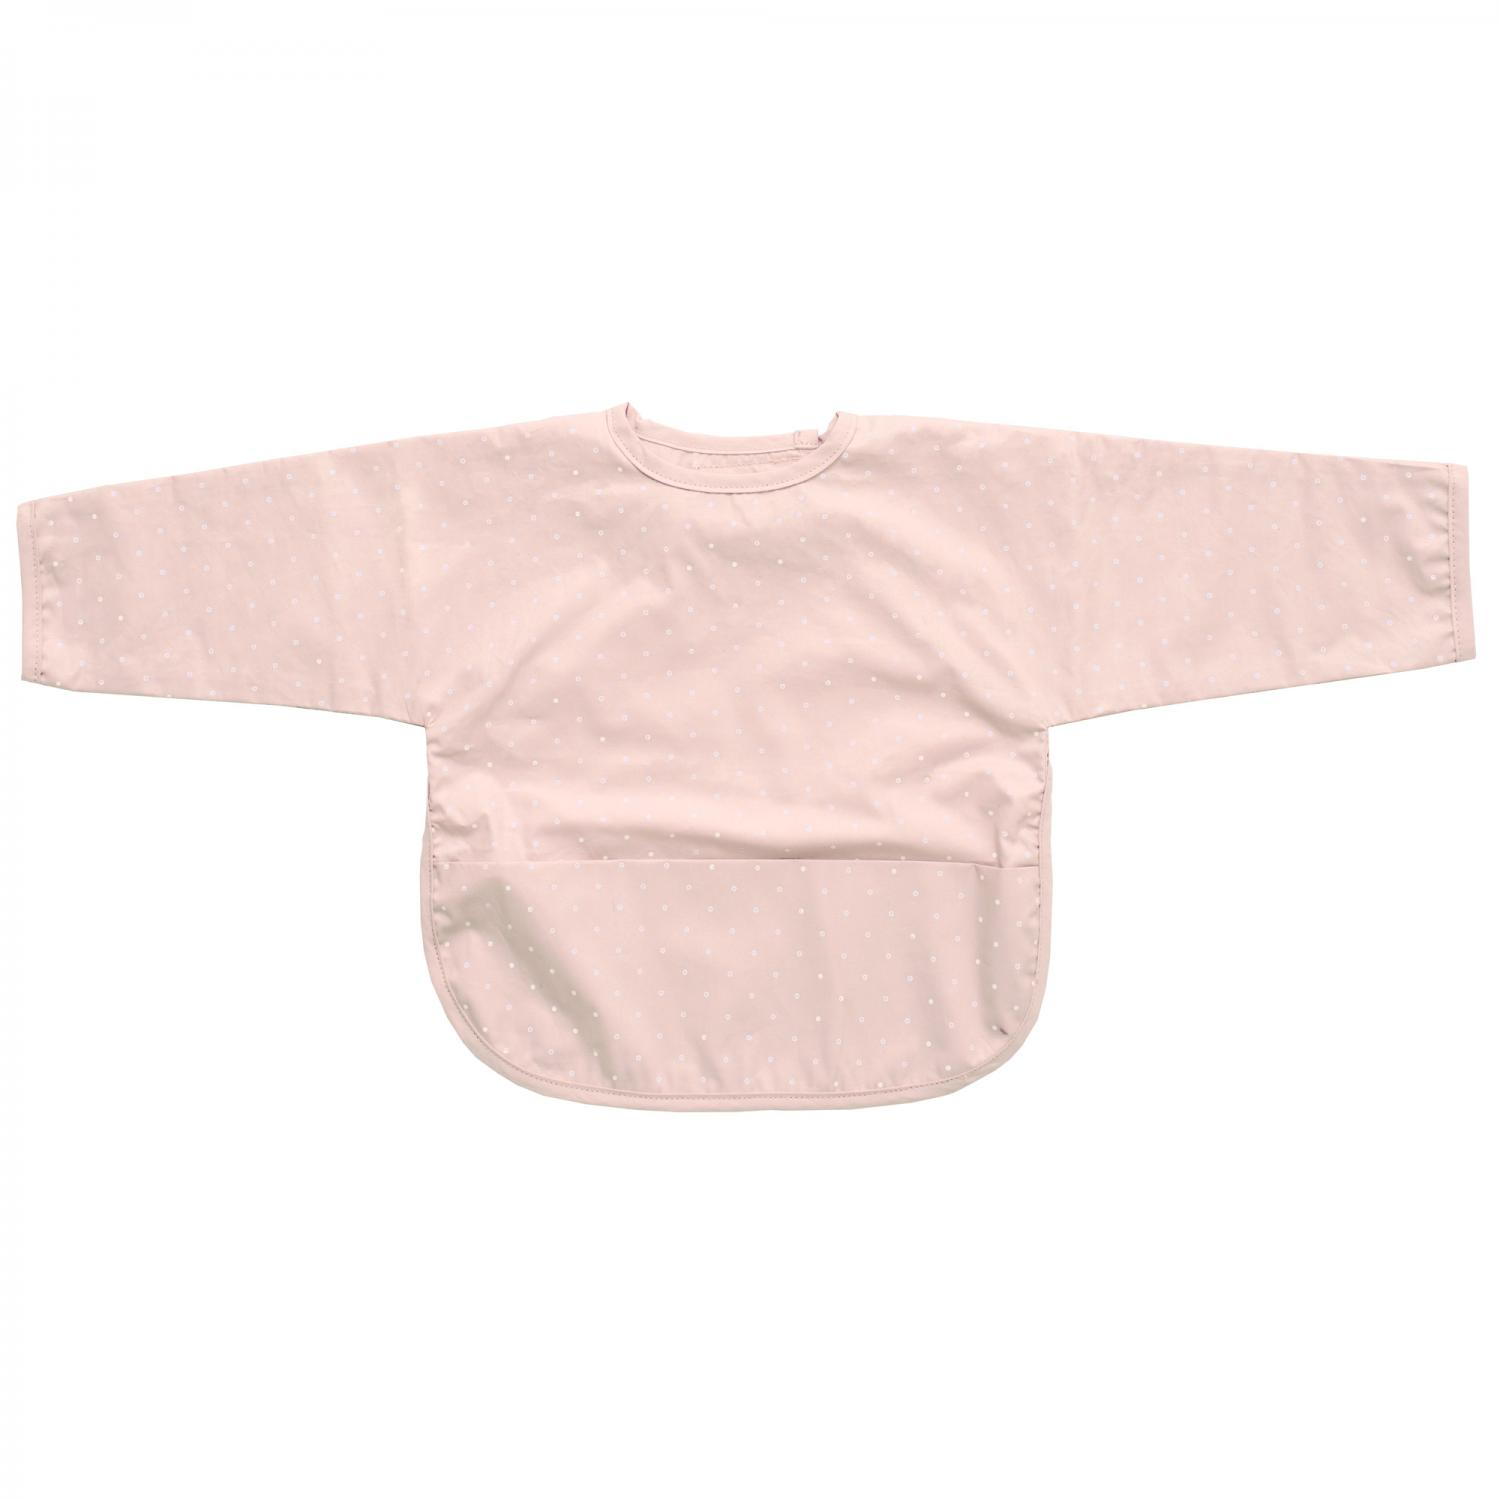 Bib with sleeves pale pink dotty